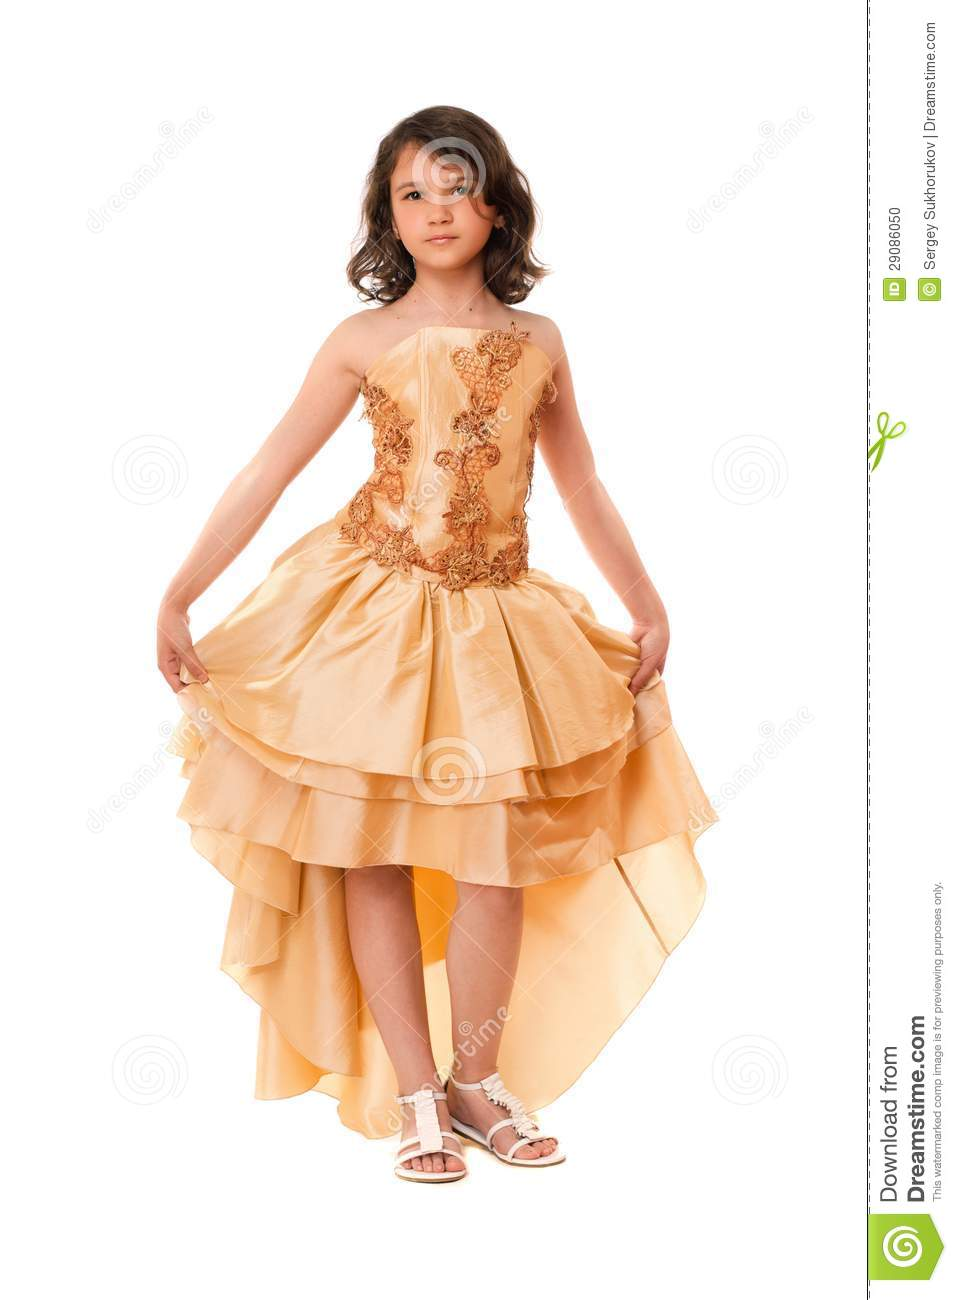 Find the best selection of cheap little girls beautiful dresses in bulk here at hitmixeoo.gq Including beautiful dresses closest and girls beautiful dress at wholesale prices from little girls beautiful dresses manufacturers. Source discount and high quality products in hundreds of categories wholesale direct from China.